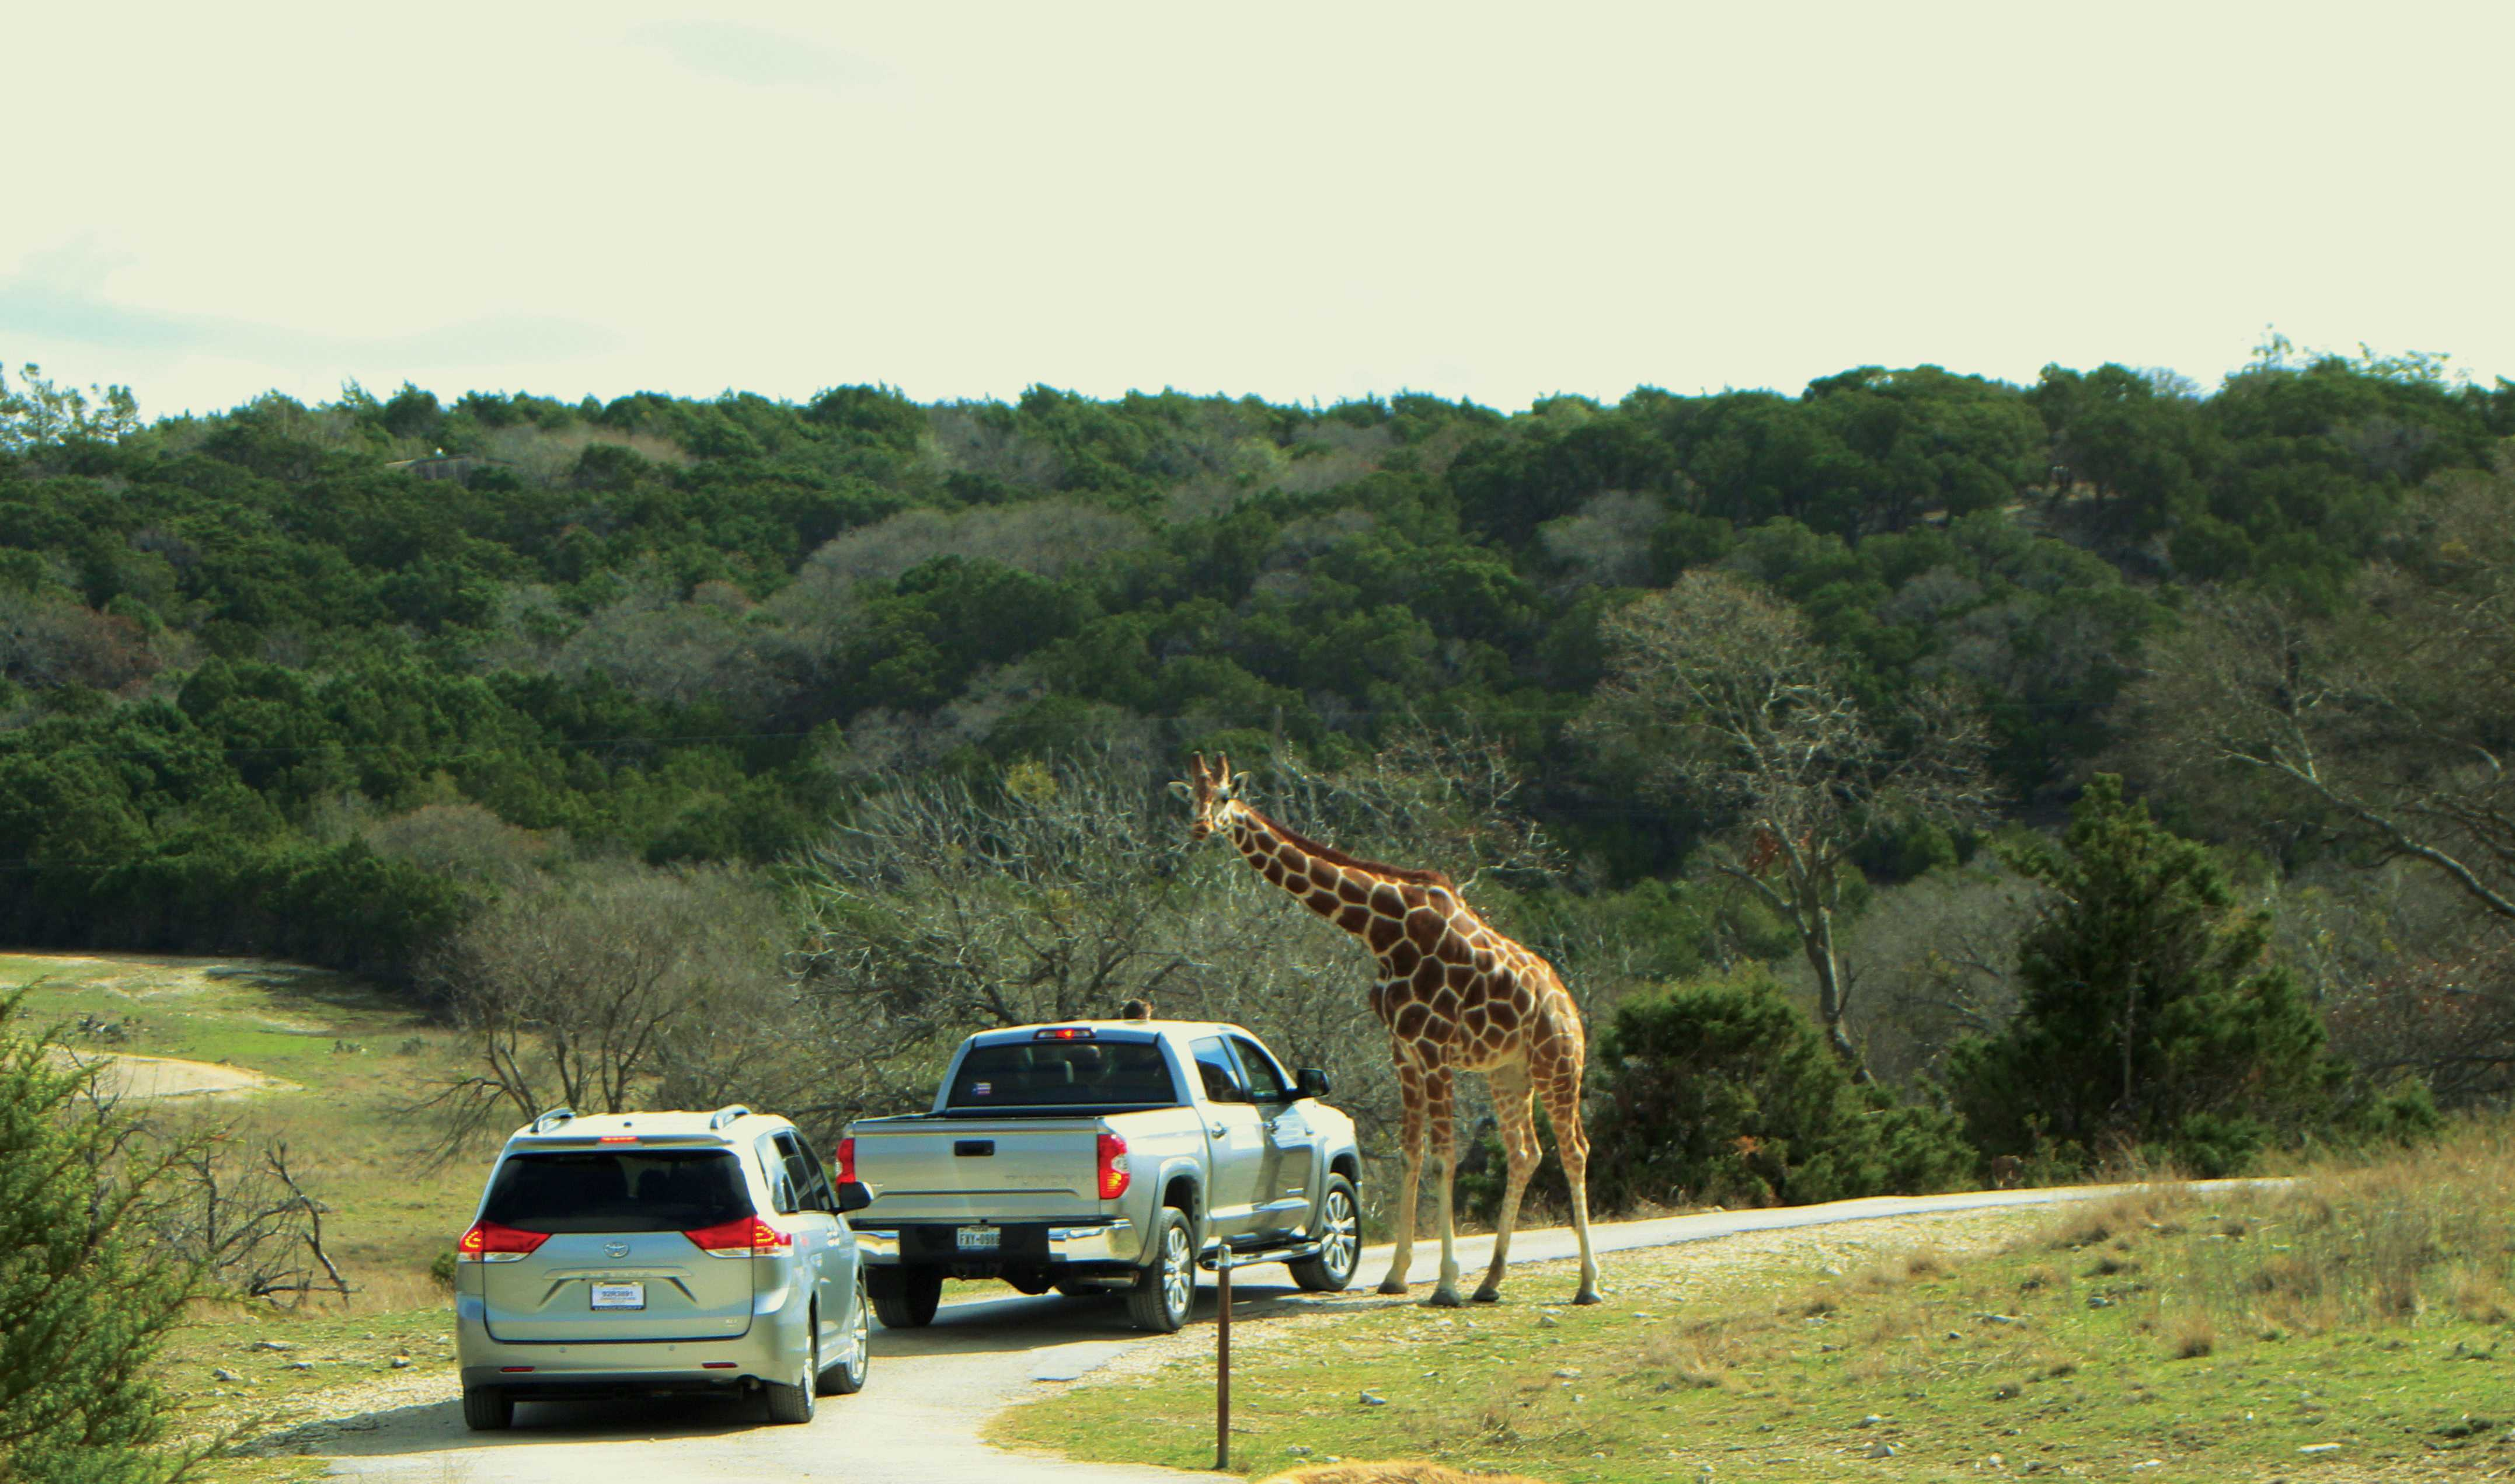 Park attendees stop to look at the giraffes roaming the area.